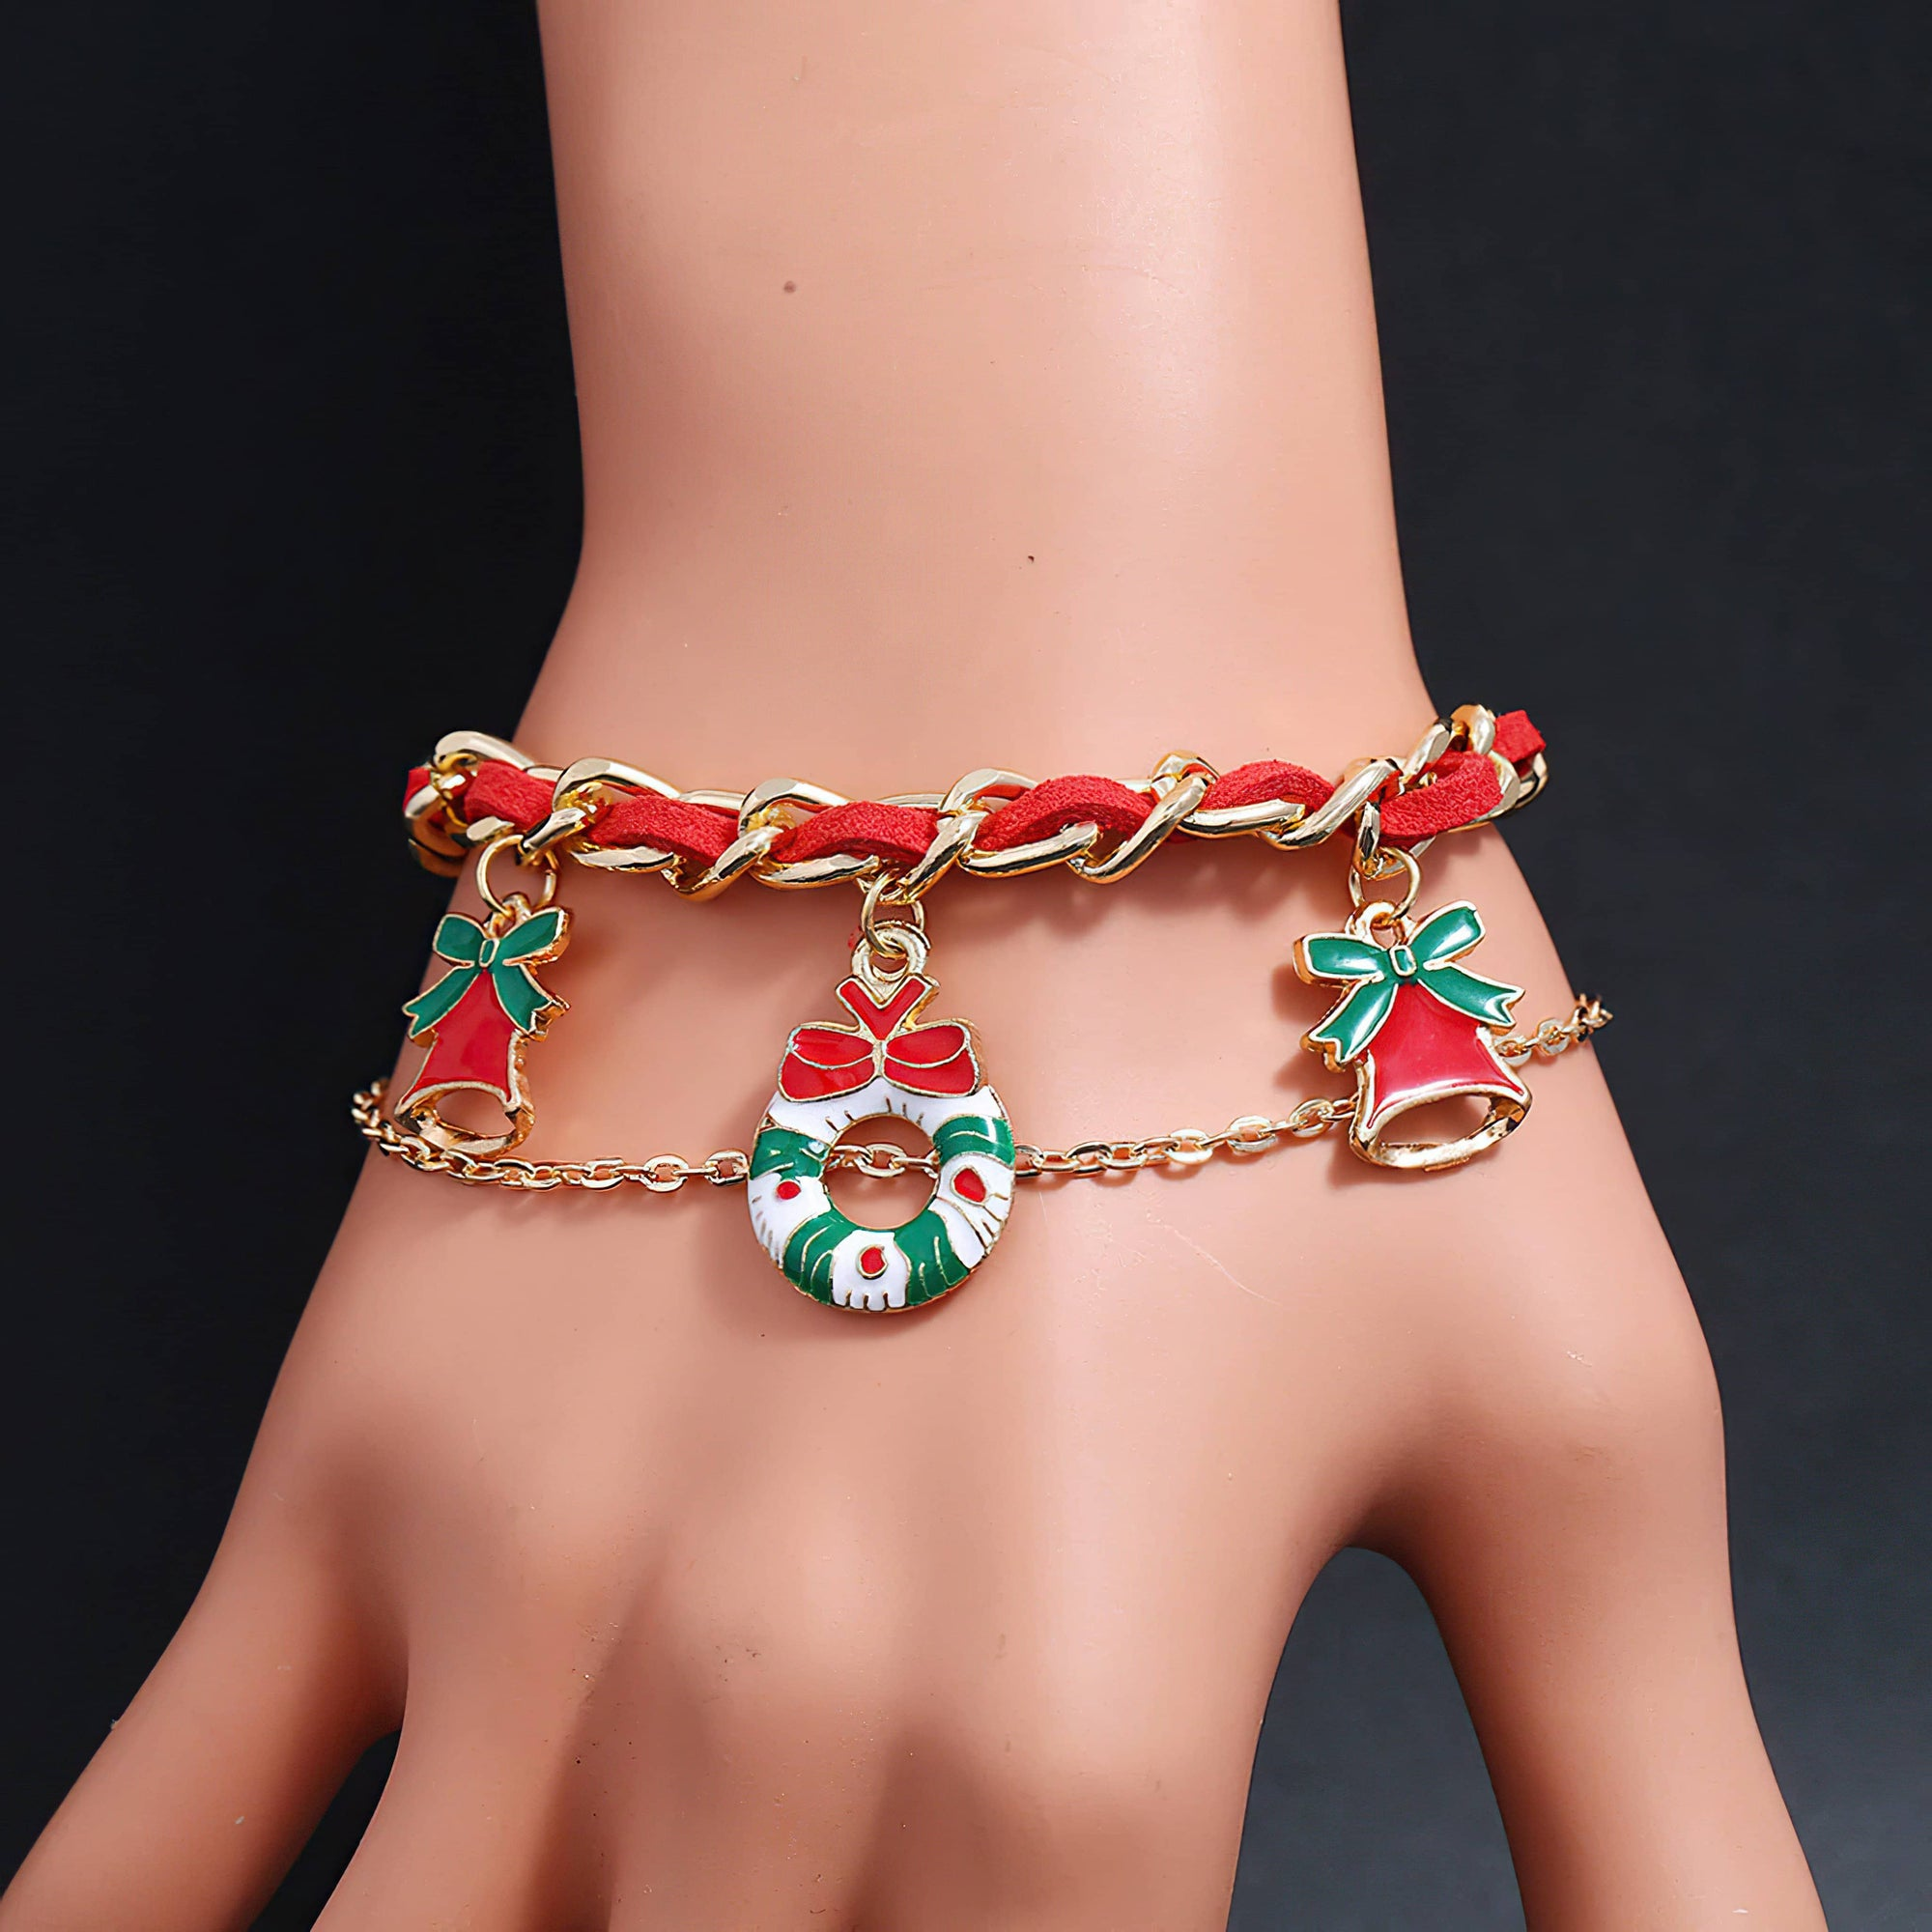 Christmas Bracelet with 3 Charms and 2 Chains - Free Shipping ! (4361868443742)